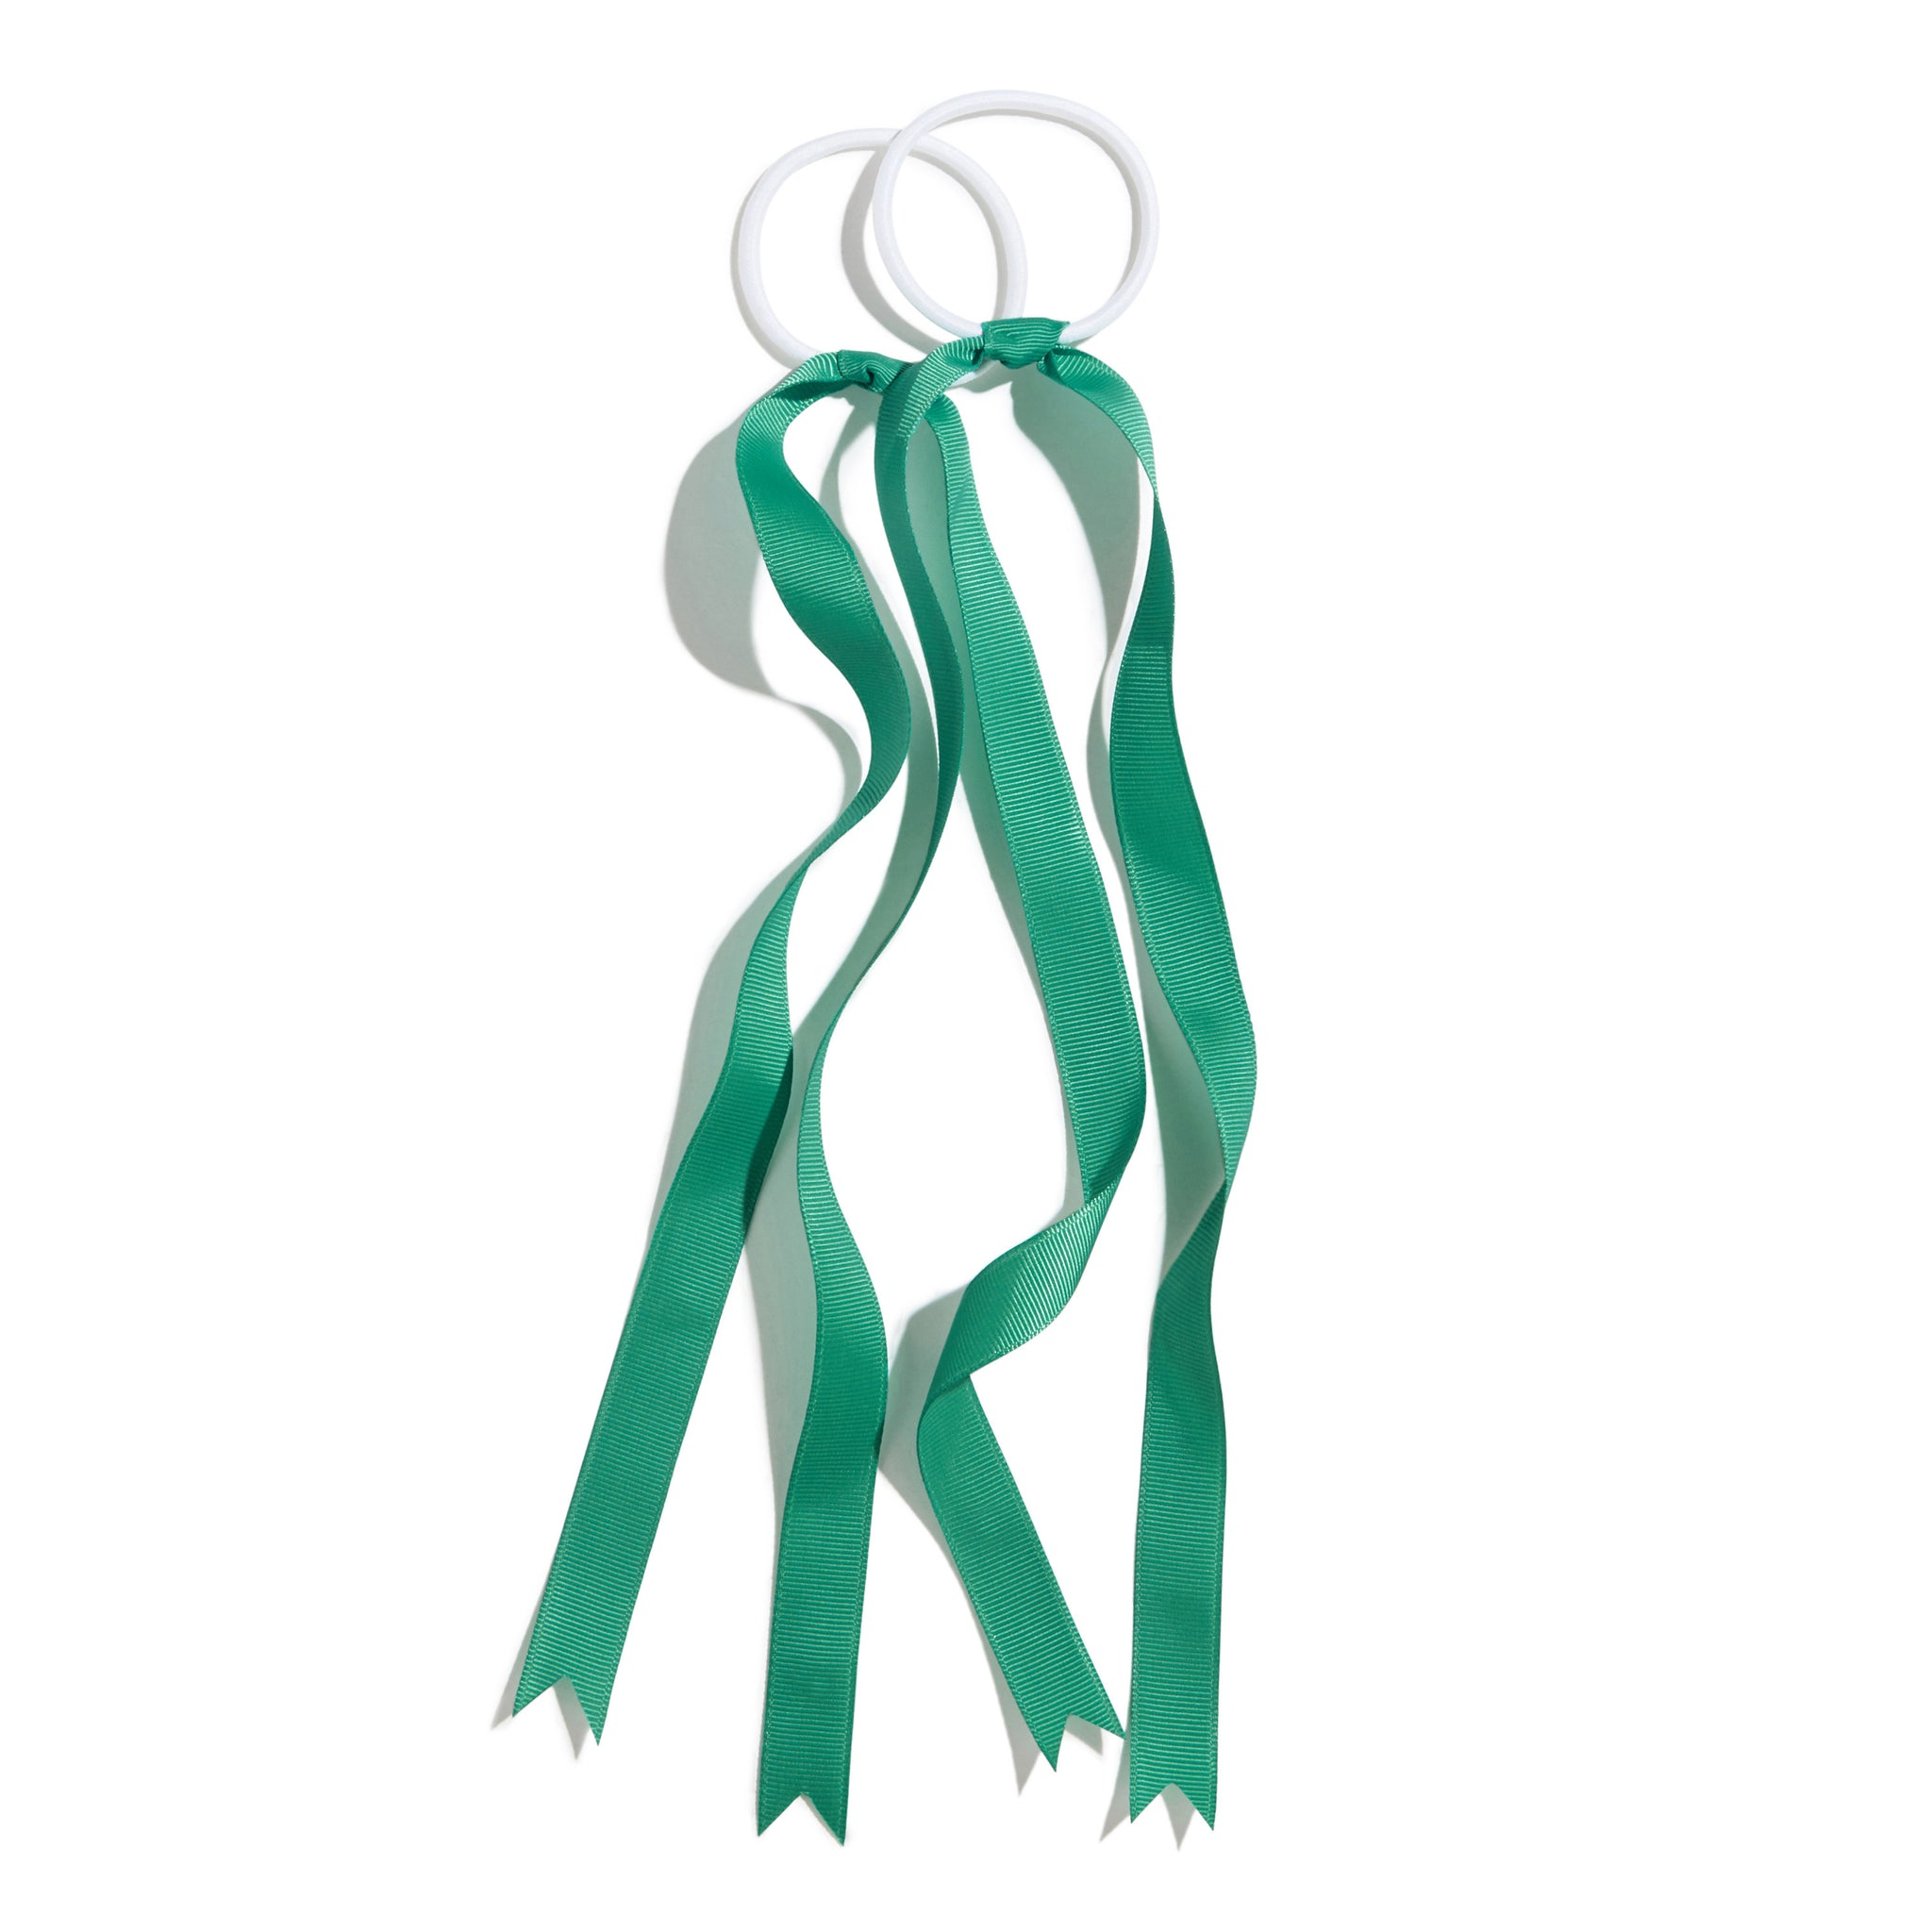 The Sienna Sport Elastic with ribbons (pair)